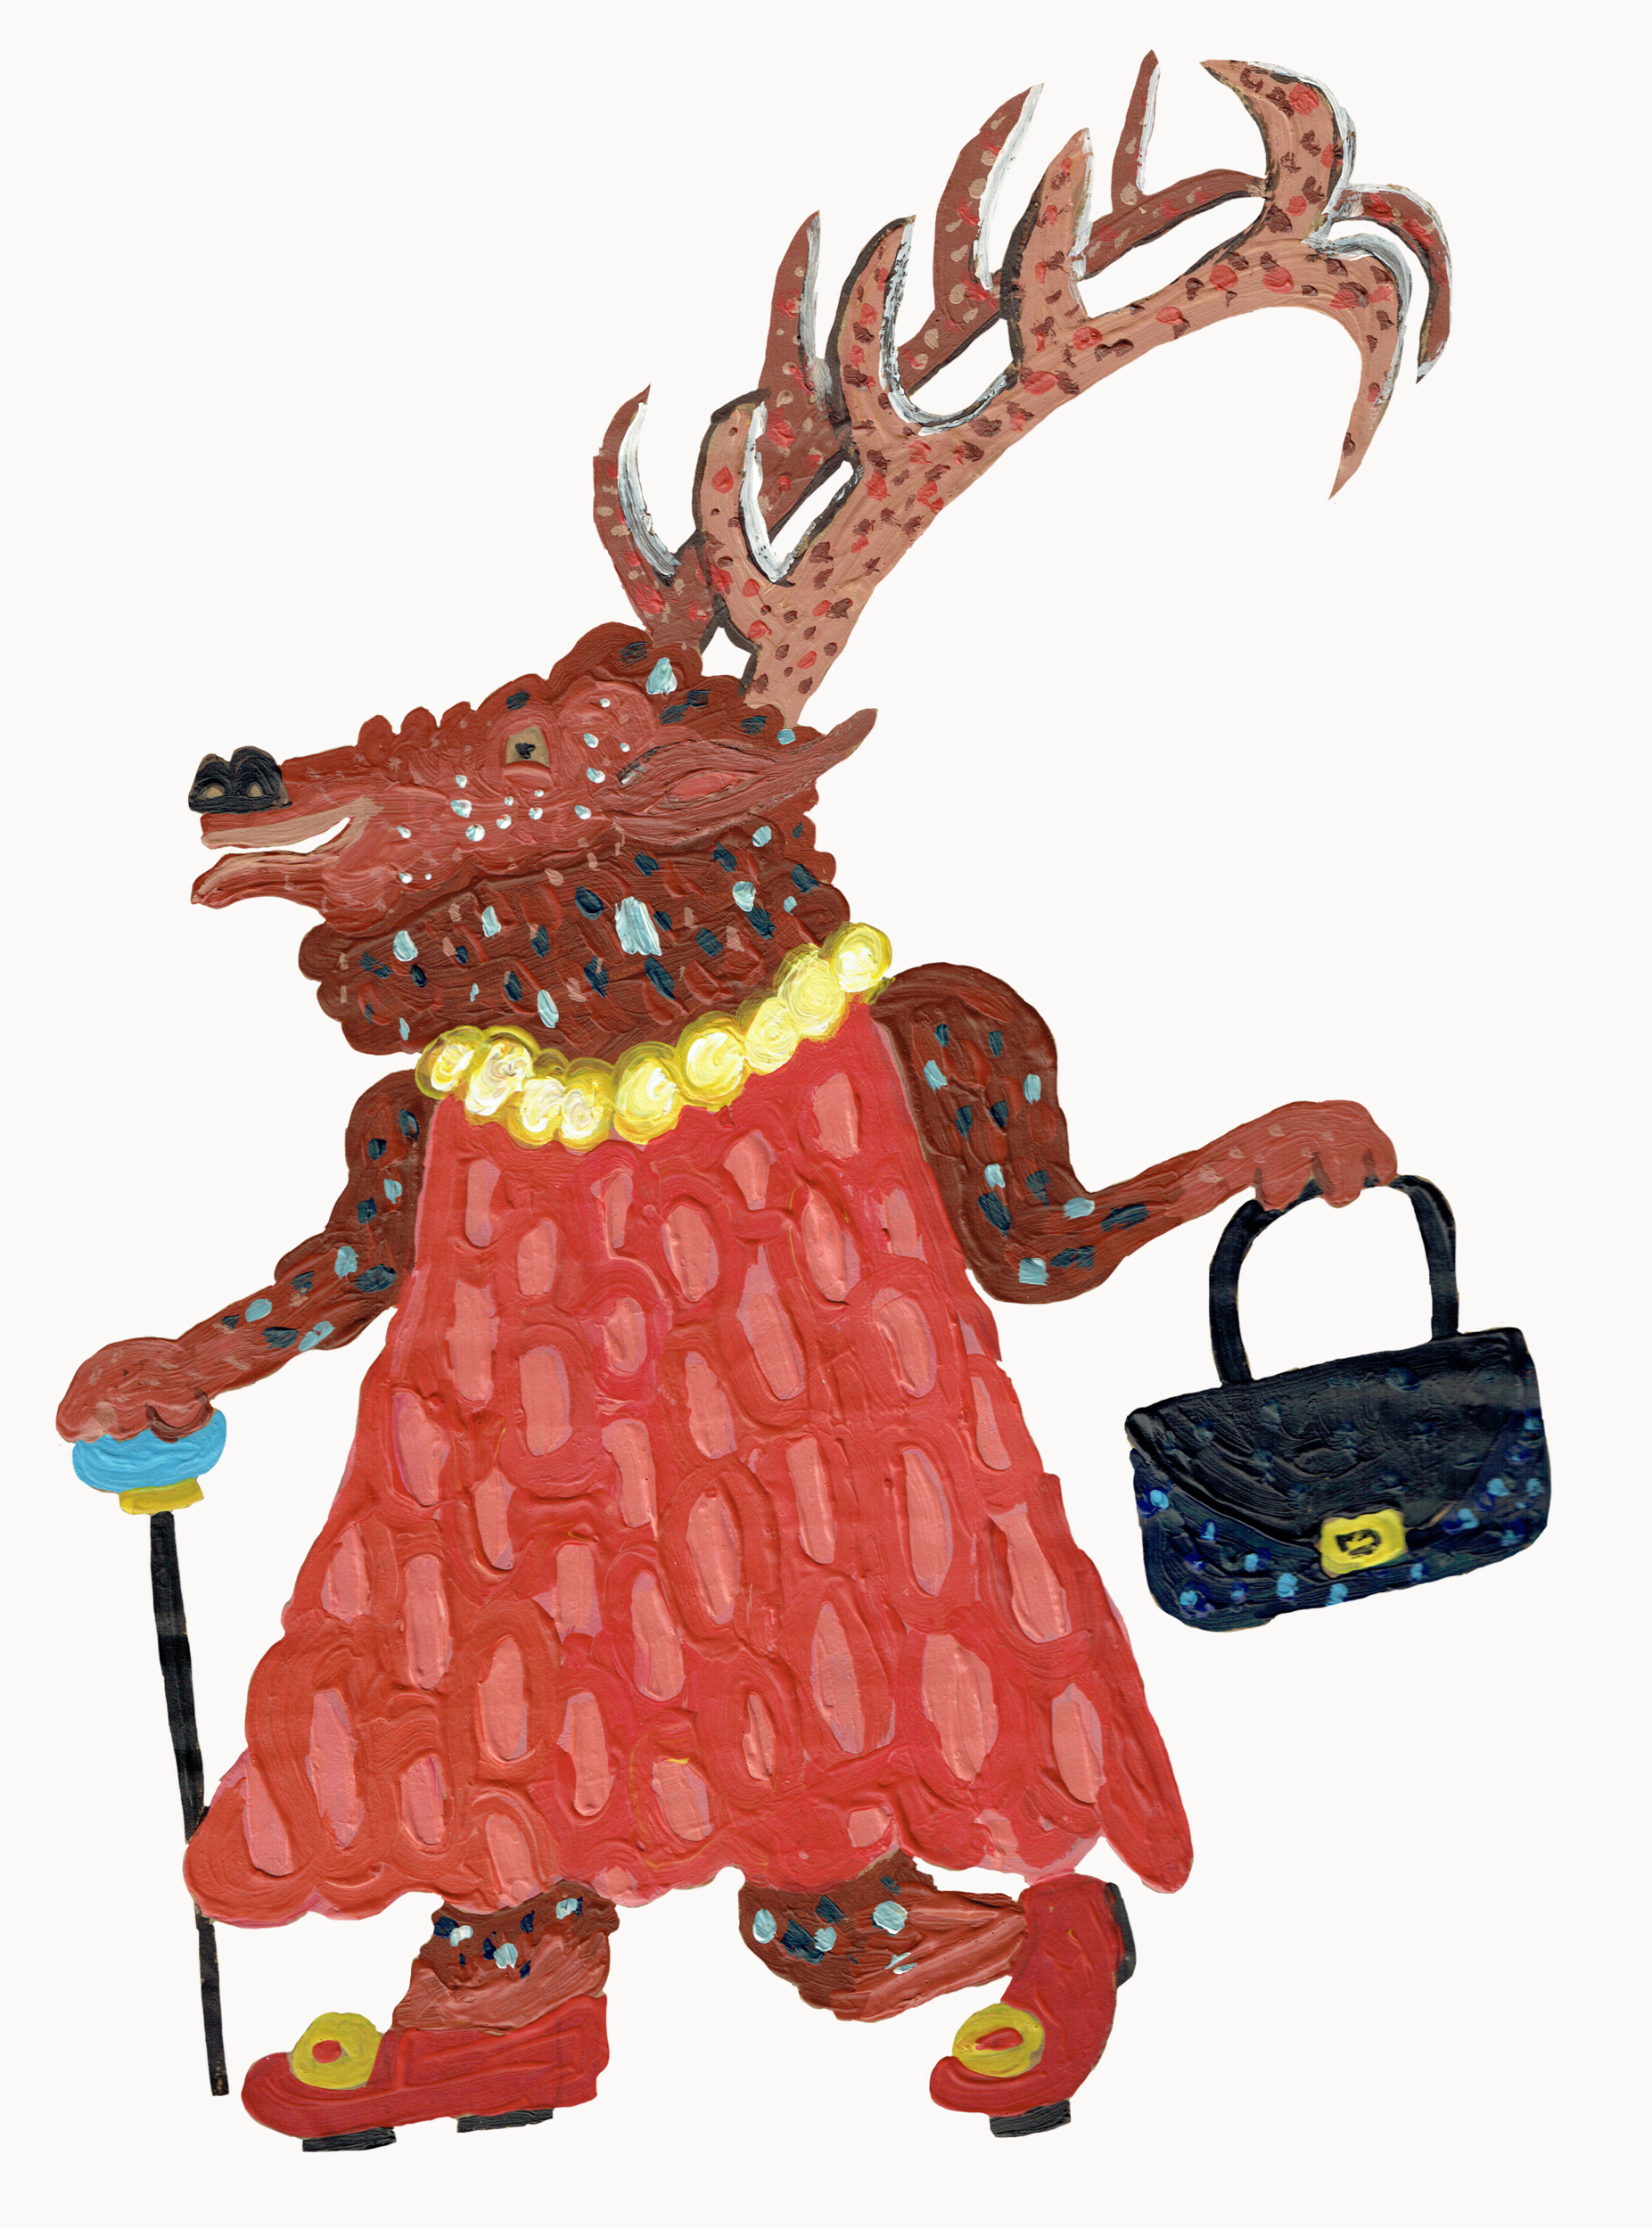 I painted this stag in a dress very quickly - it was the last one I made, painted using the surplus paint I had to use up.